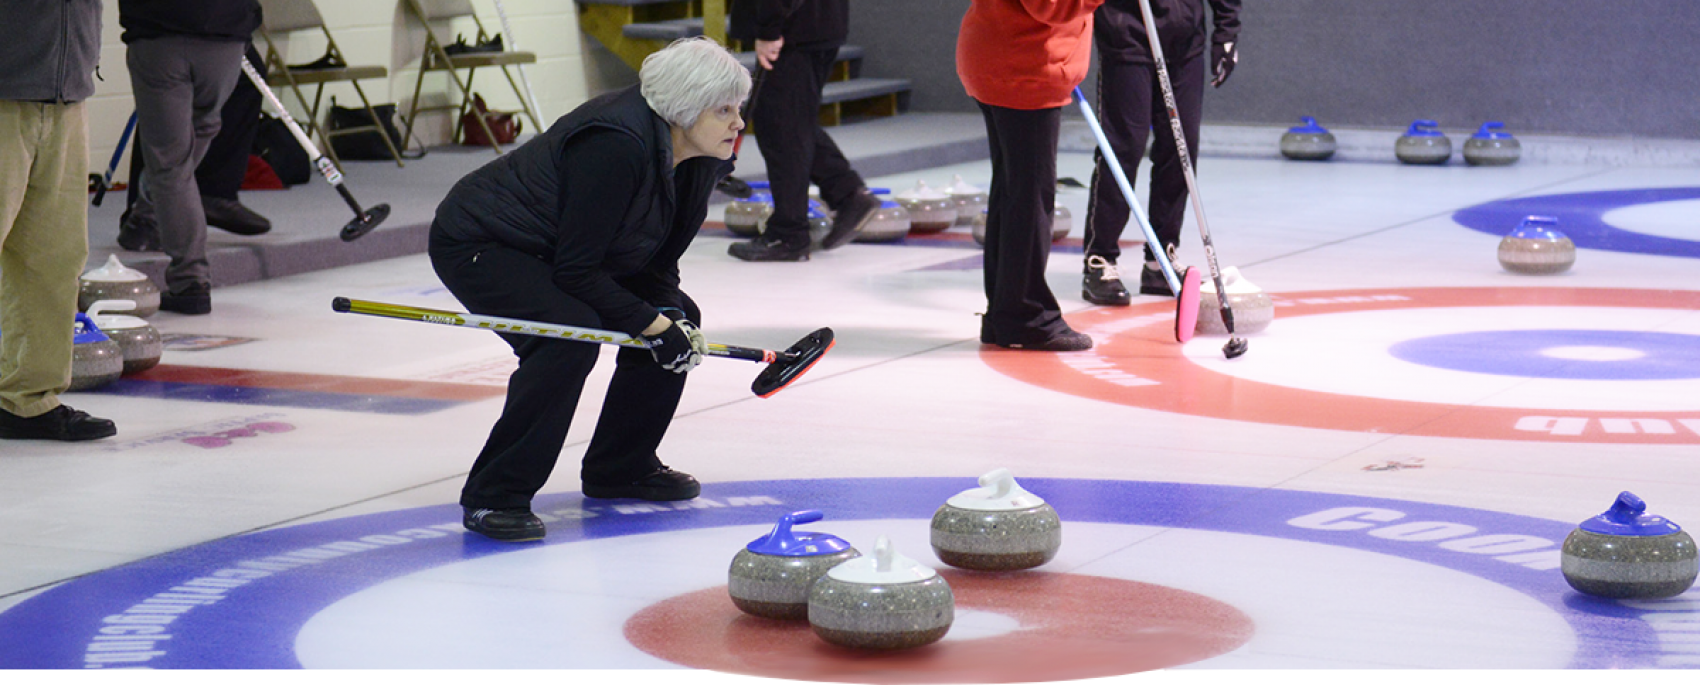 Curling Club League Schedule